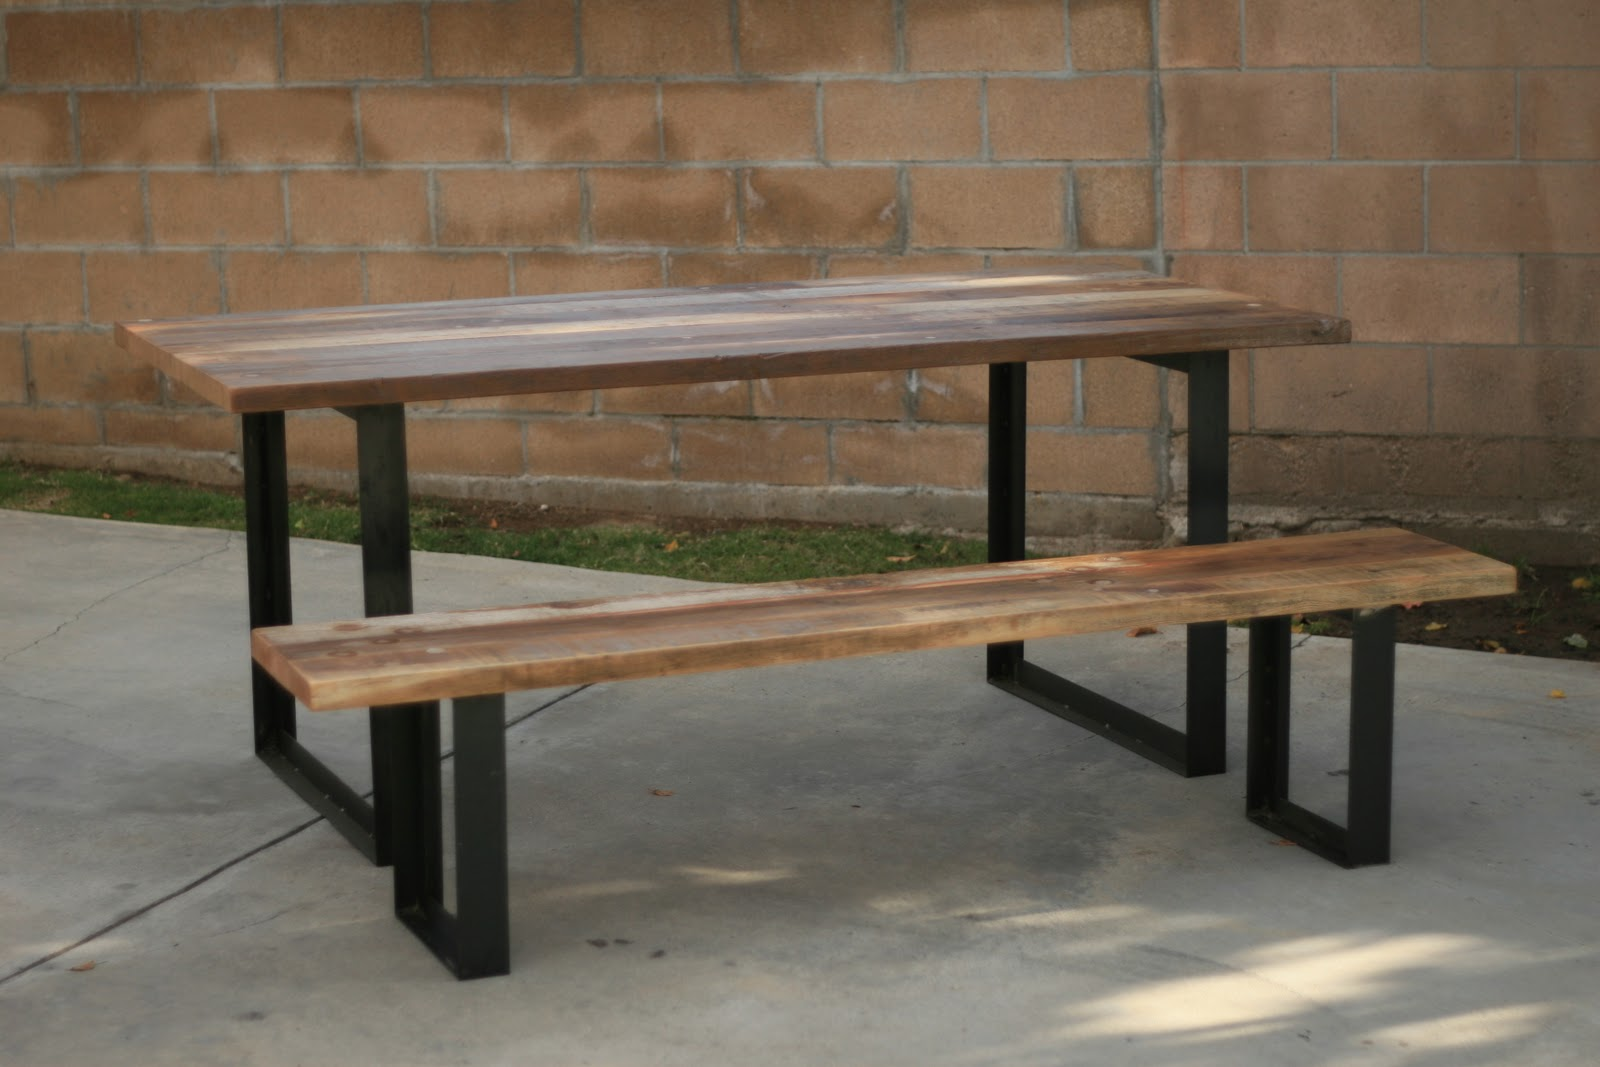 Picture of: Outdoor Table Bench with Metal Legs